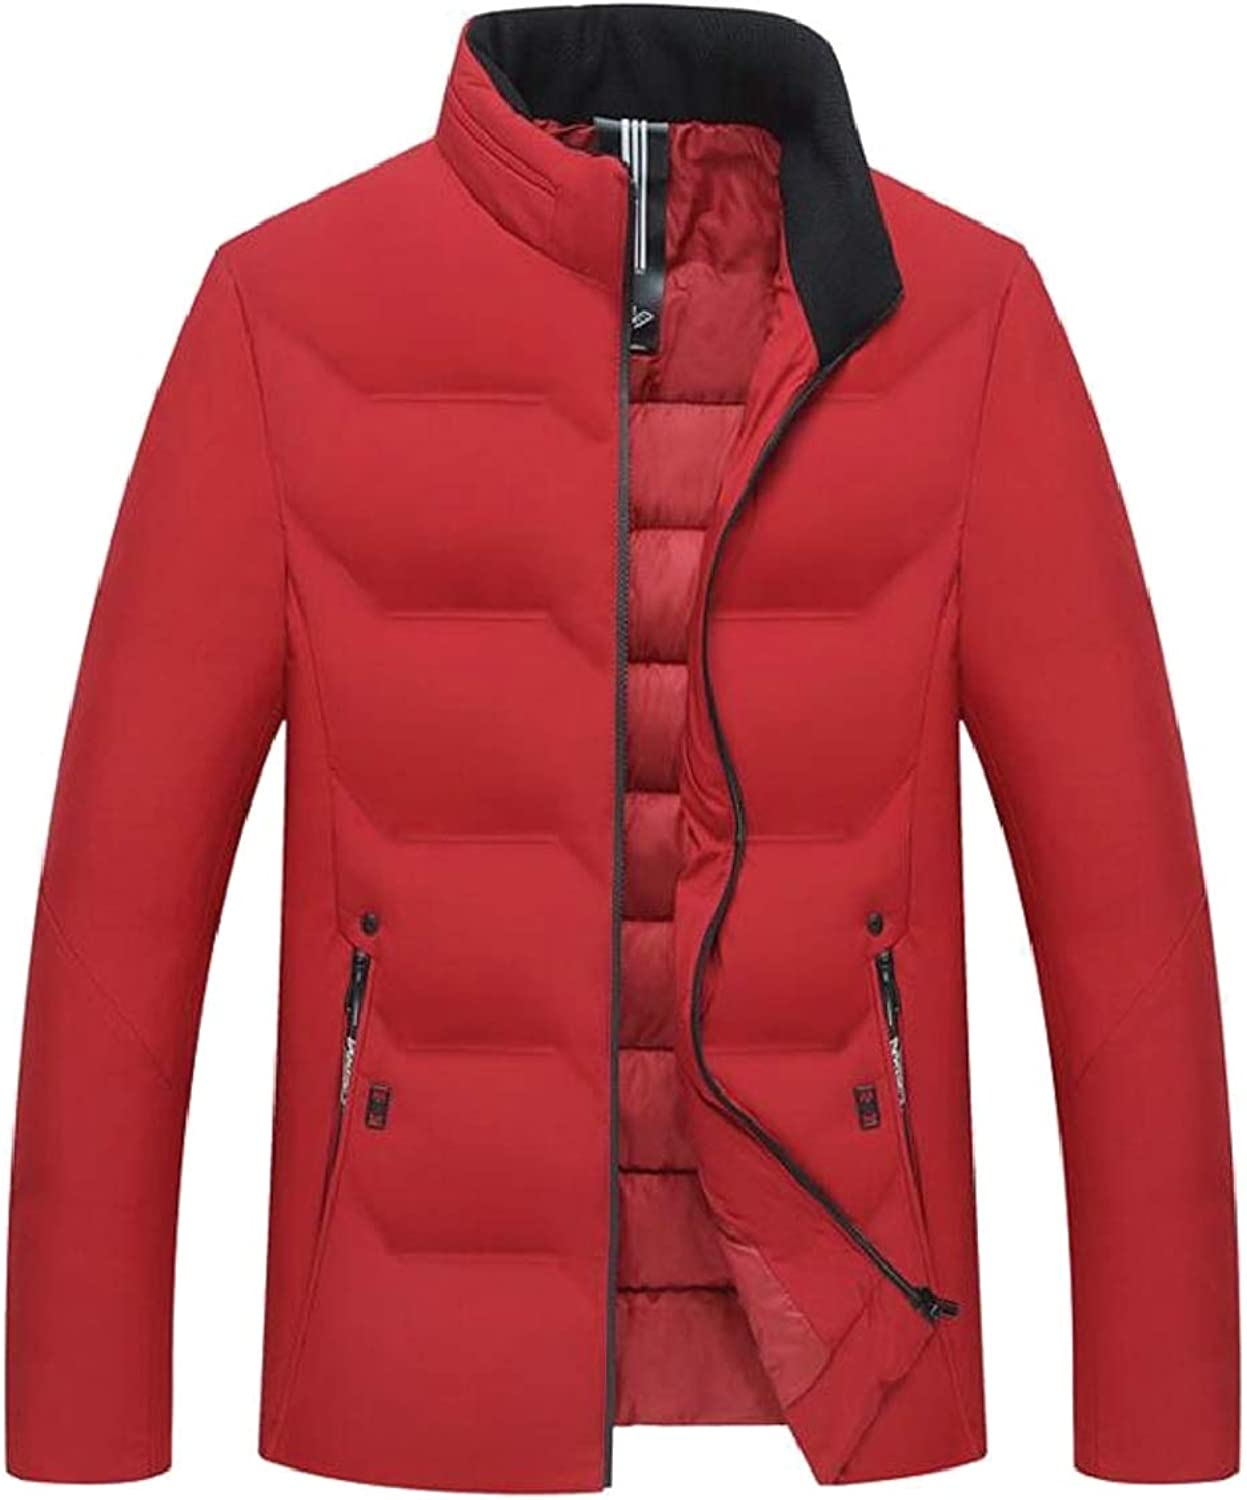 f43a4a28e LEISHOP Men Winter Winter Winter Stand Collar Quilted Puffer Jacket Warm  Thick Cotton Down Coat dc53c3